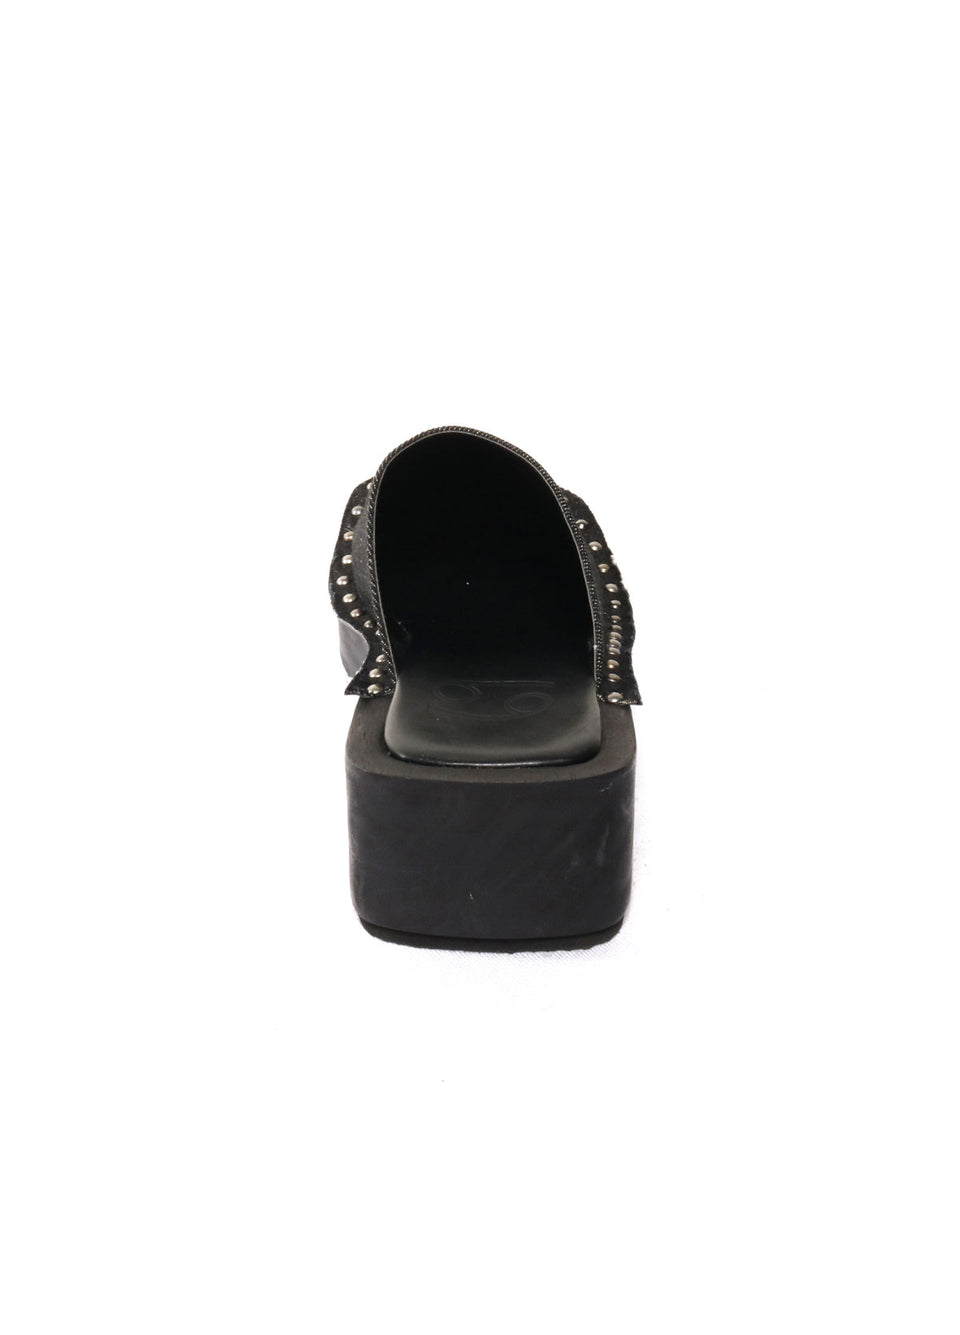 Box Clog Black Denim - 69